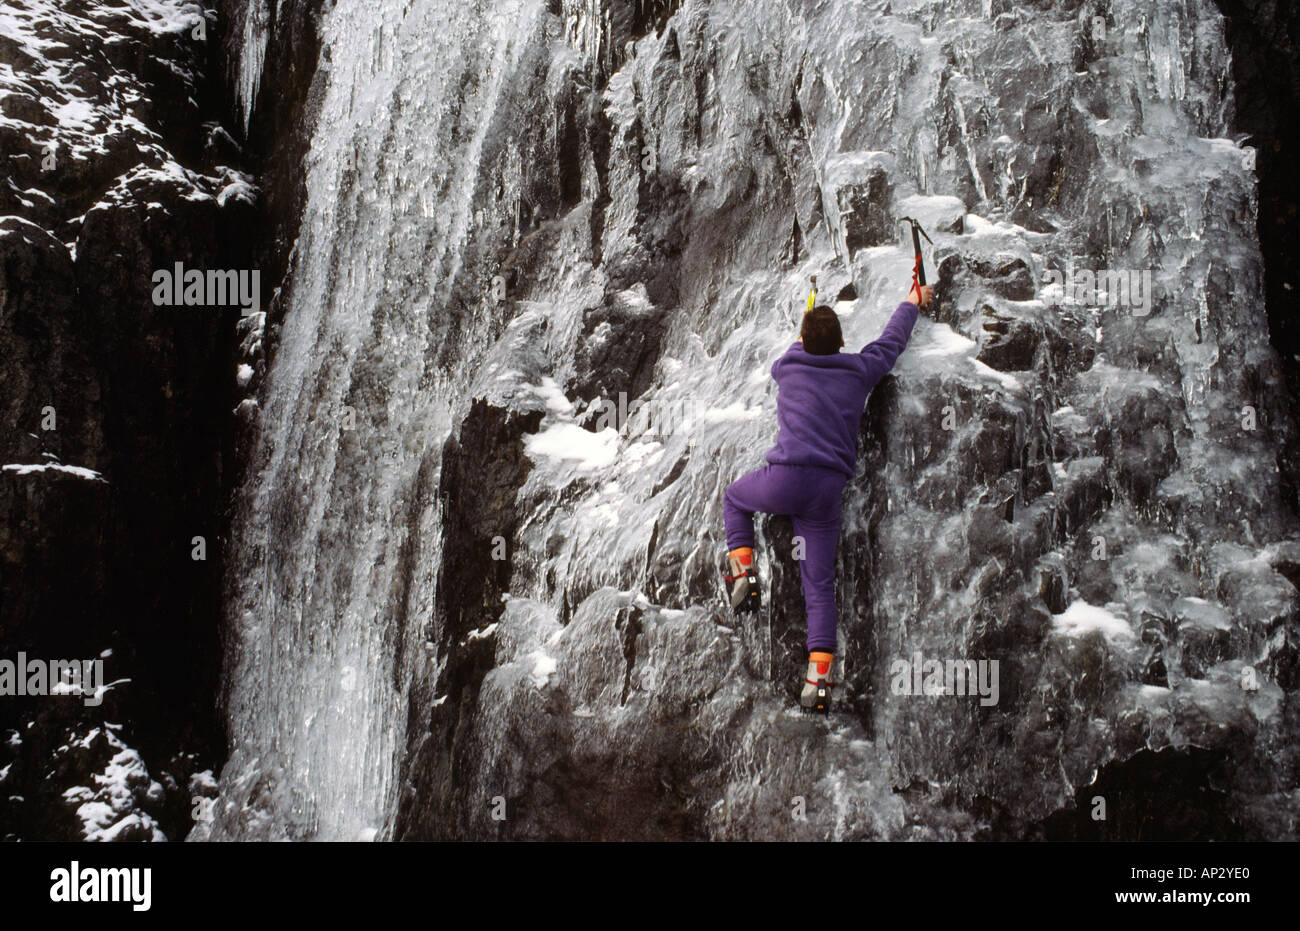 ice climber Sam Wellend Ice climbing in Snowdonia National Park North Wales Great Britain - Stock Image